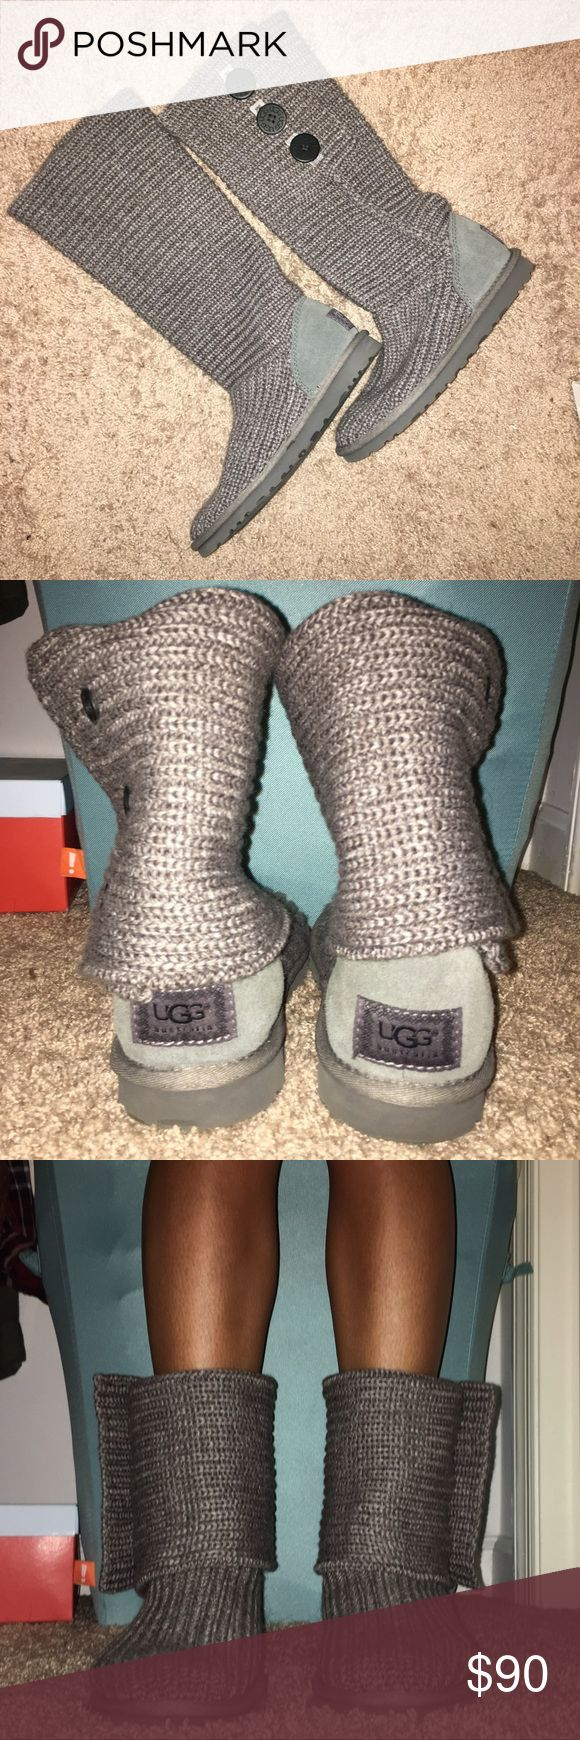 *Never Worn* UGG Classic Cardy Sweater Boots NEVER WORN! Amazing condition! Can be worn over the calf or folded over as shown in picture. No box. UGG Shoes Winter & Rain Boots